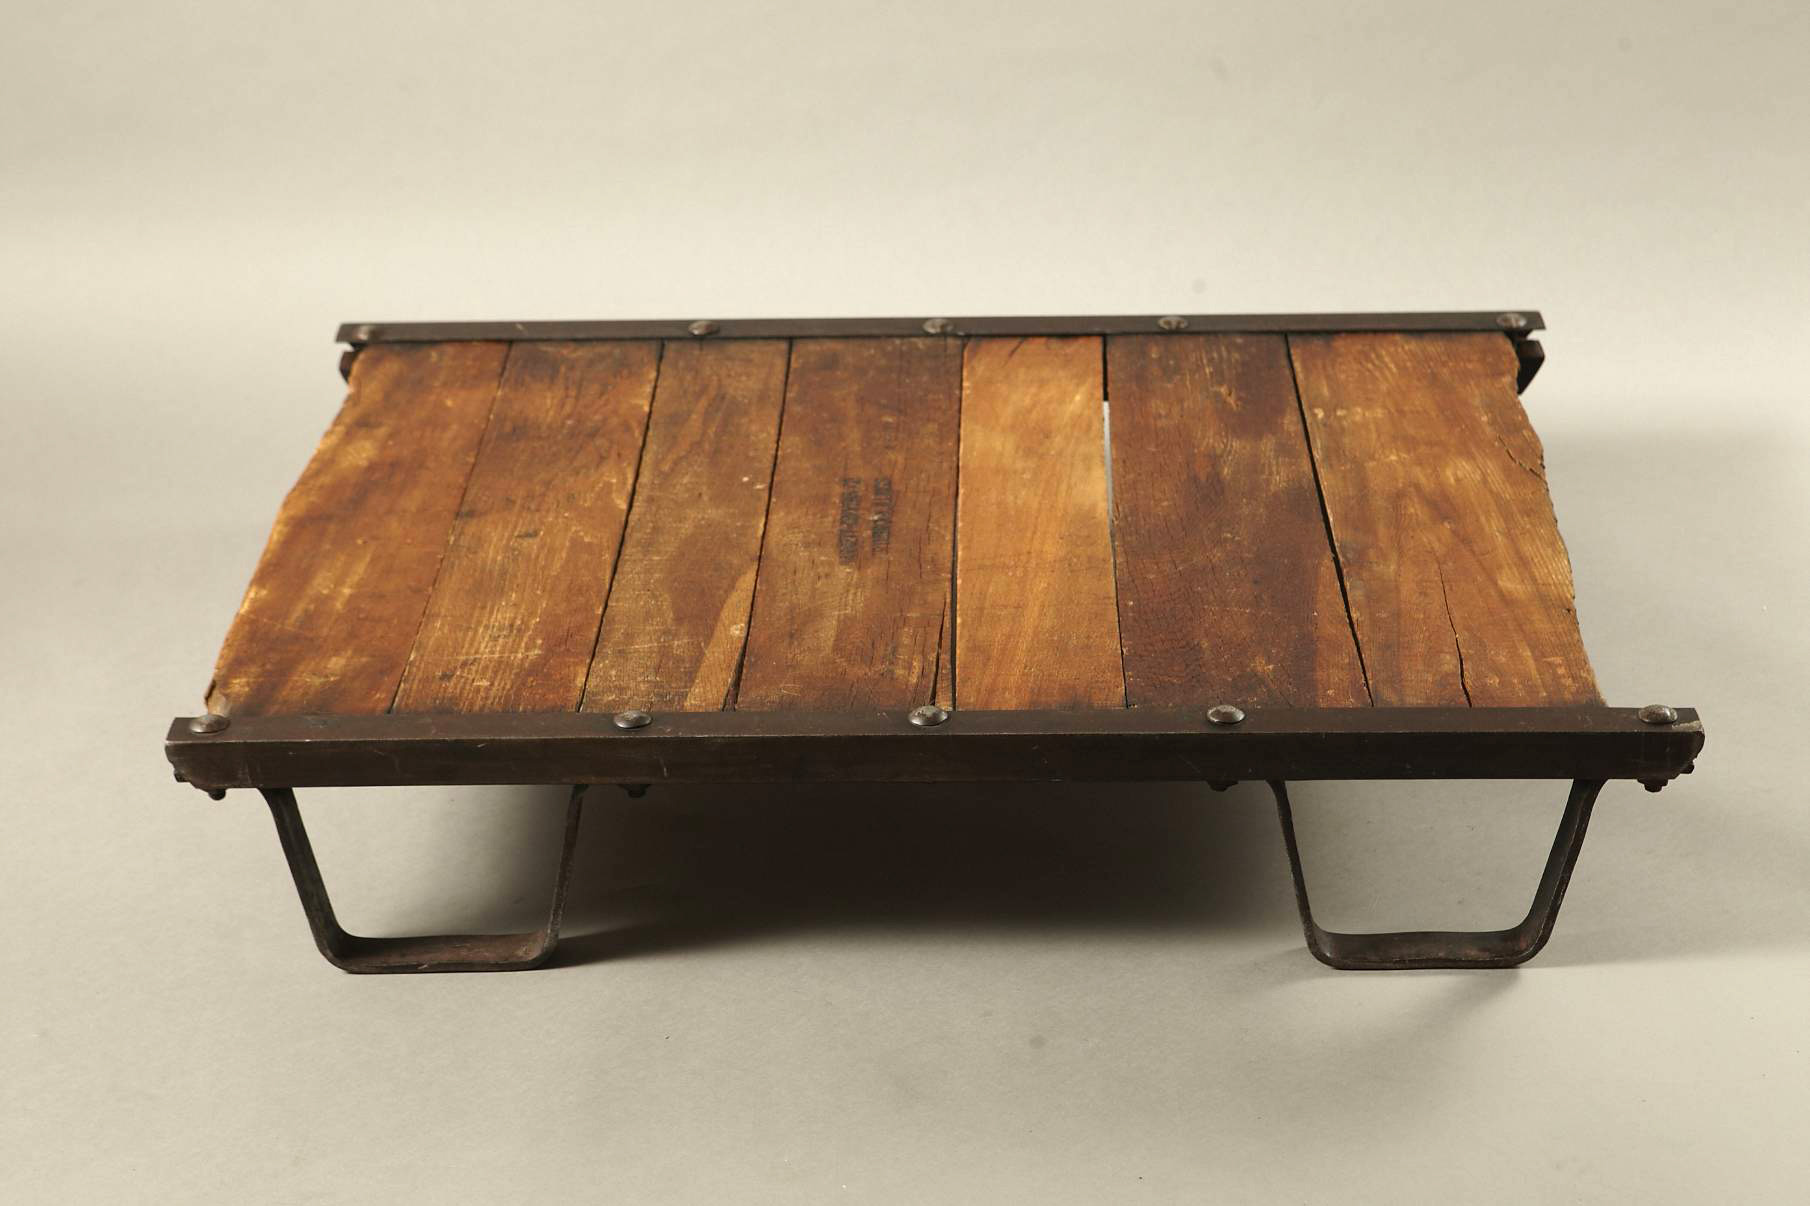 industrial low coffee table from antique wooden pallet